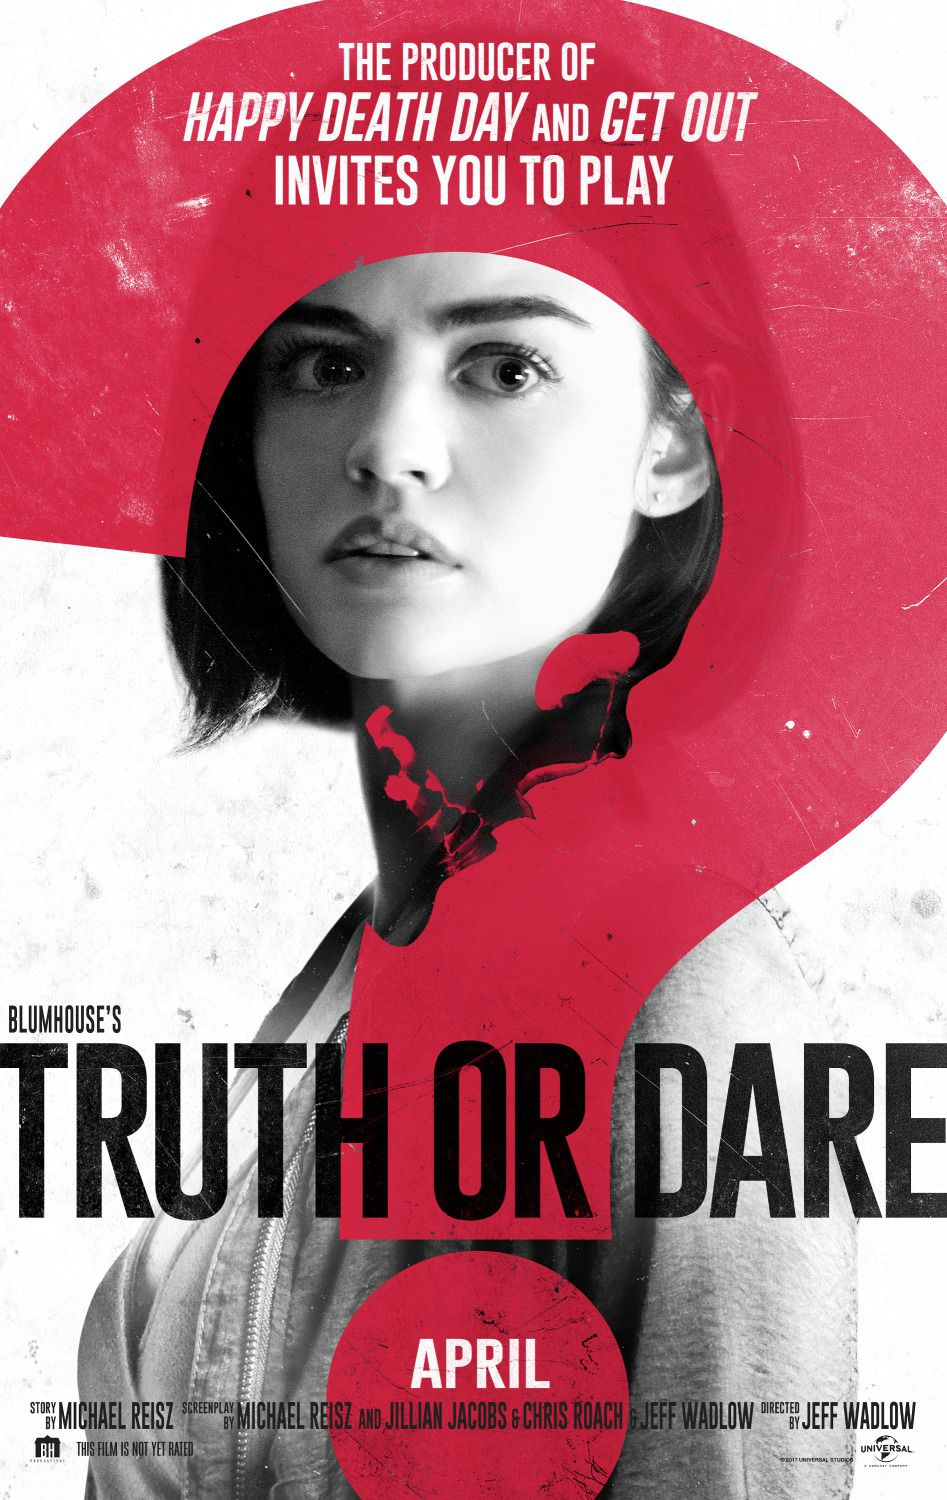 Blumhouse's Truth or Dare - film poster